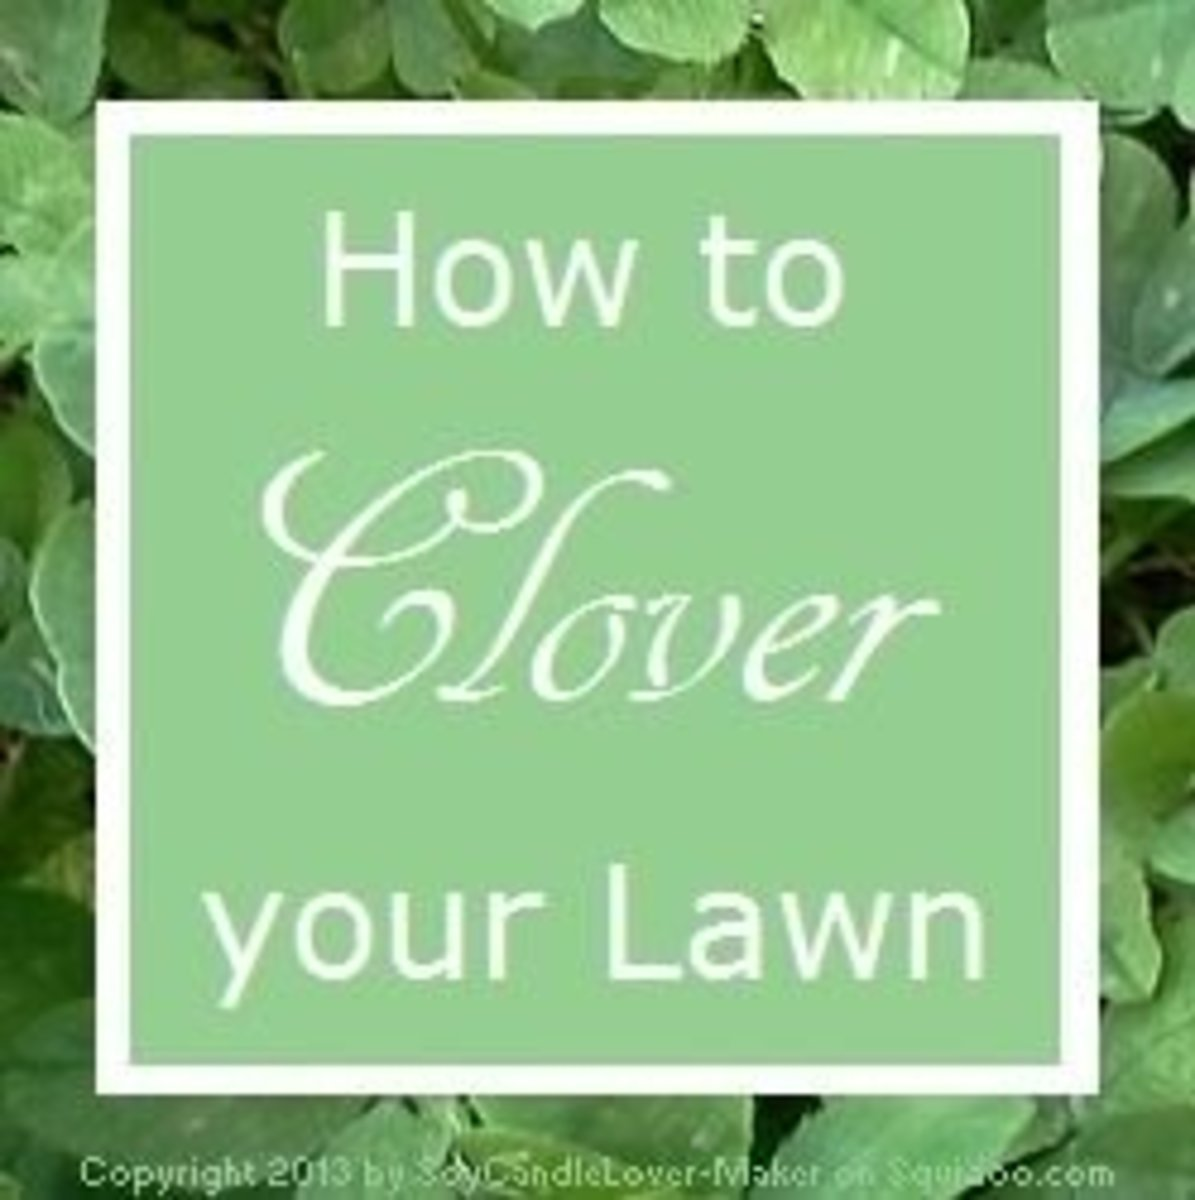 How to Clover your Lawn